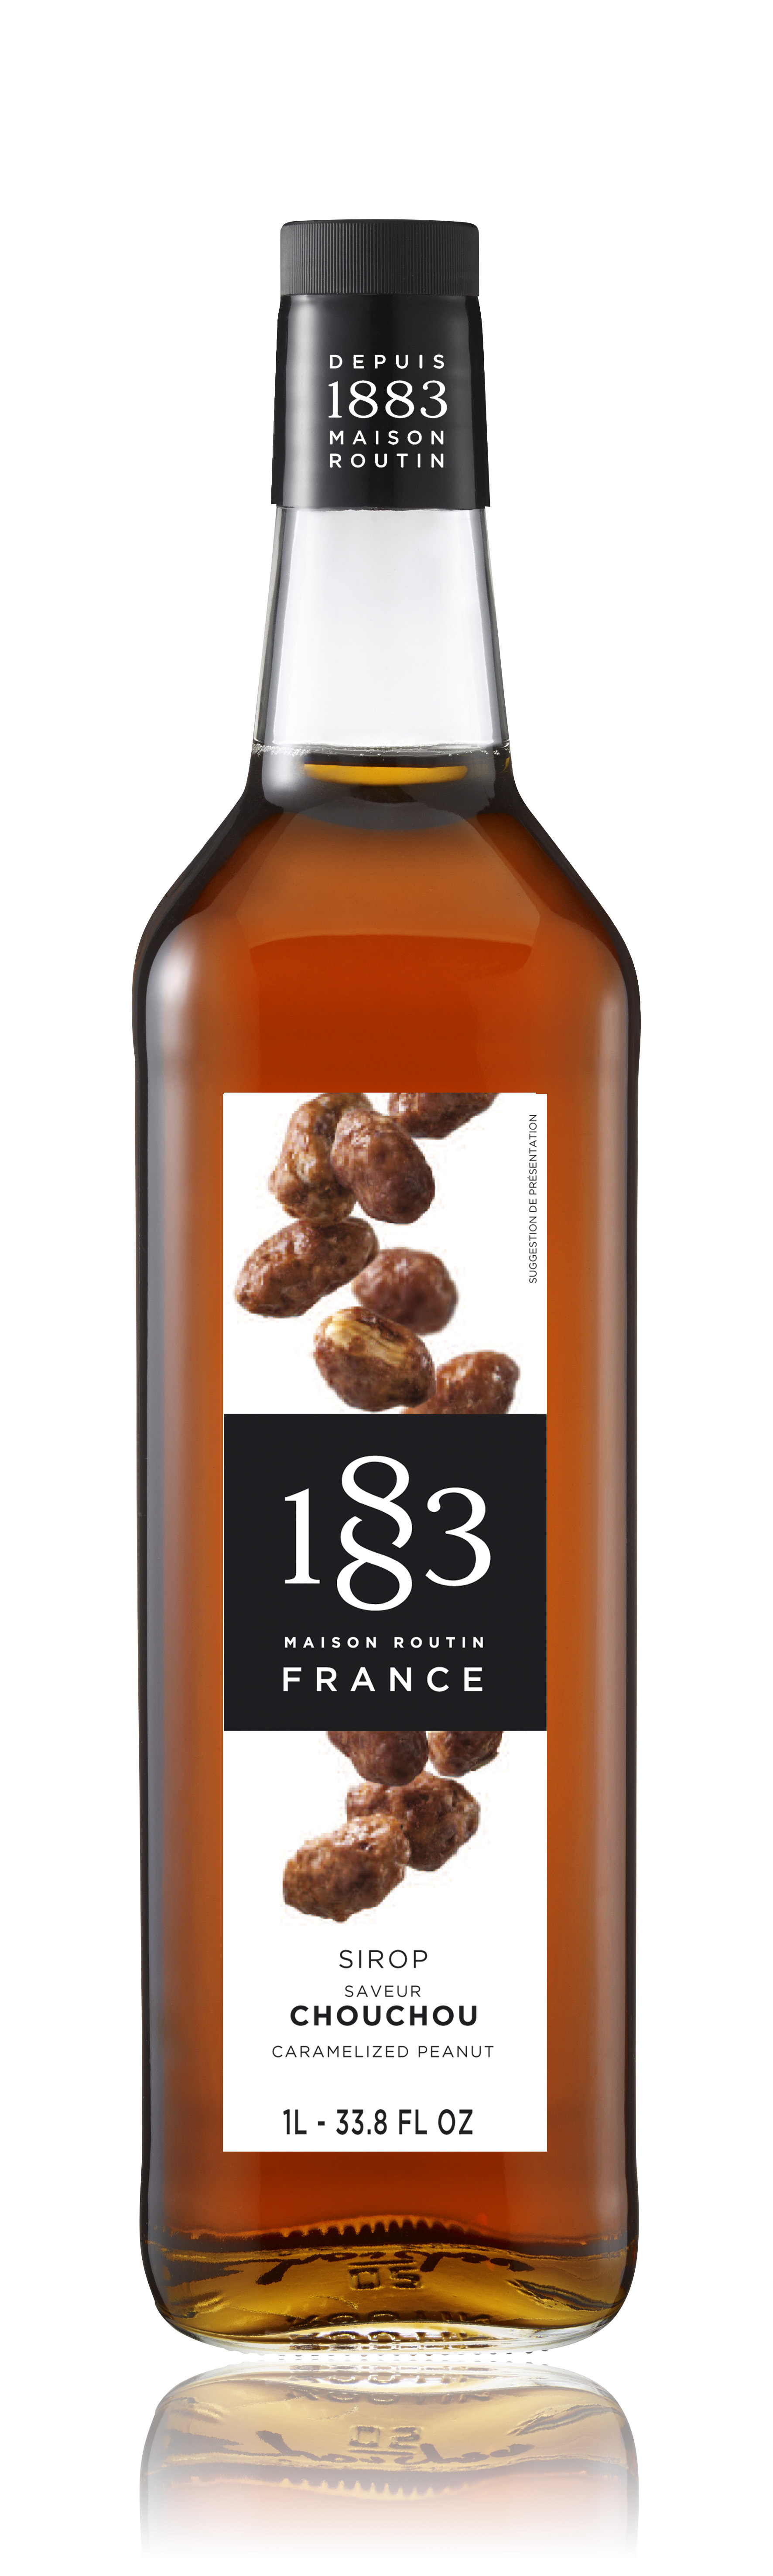 1883 Syrup Caramelised Peanut 1L Glass Bottle